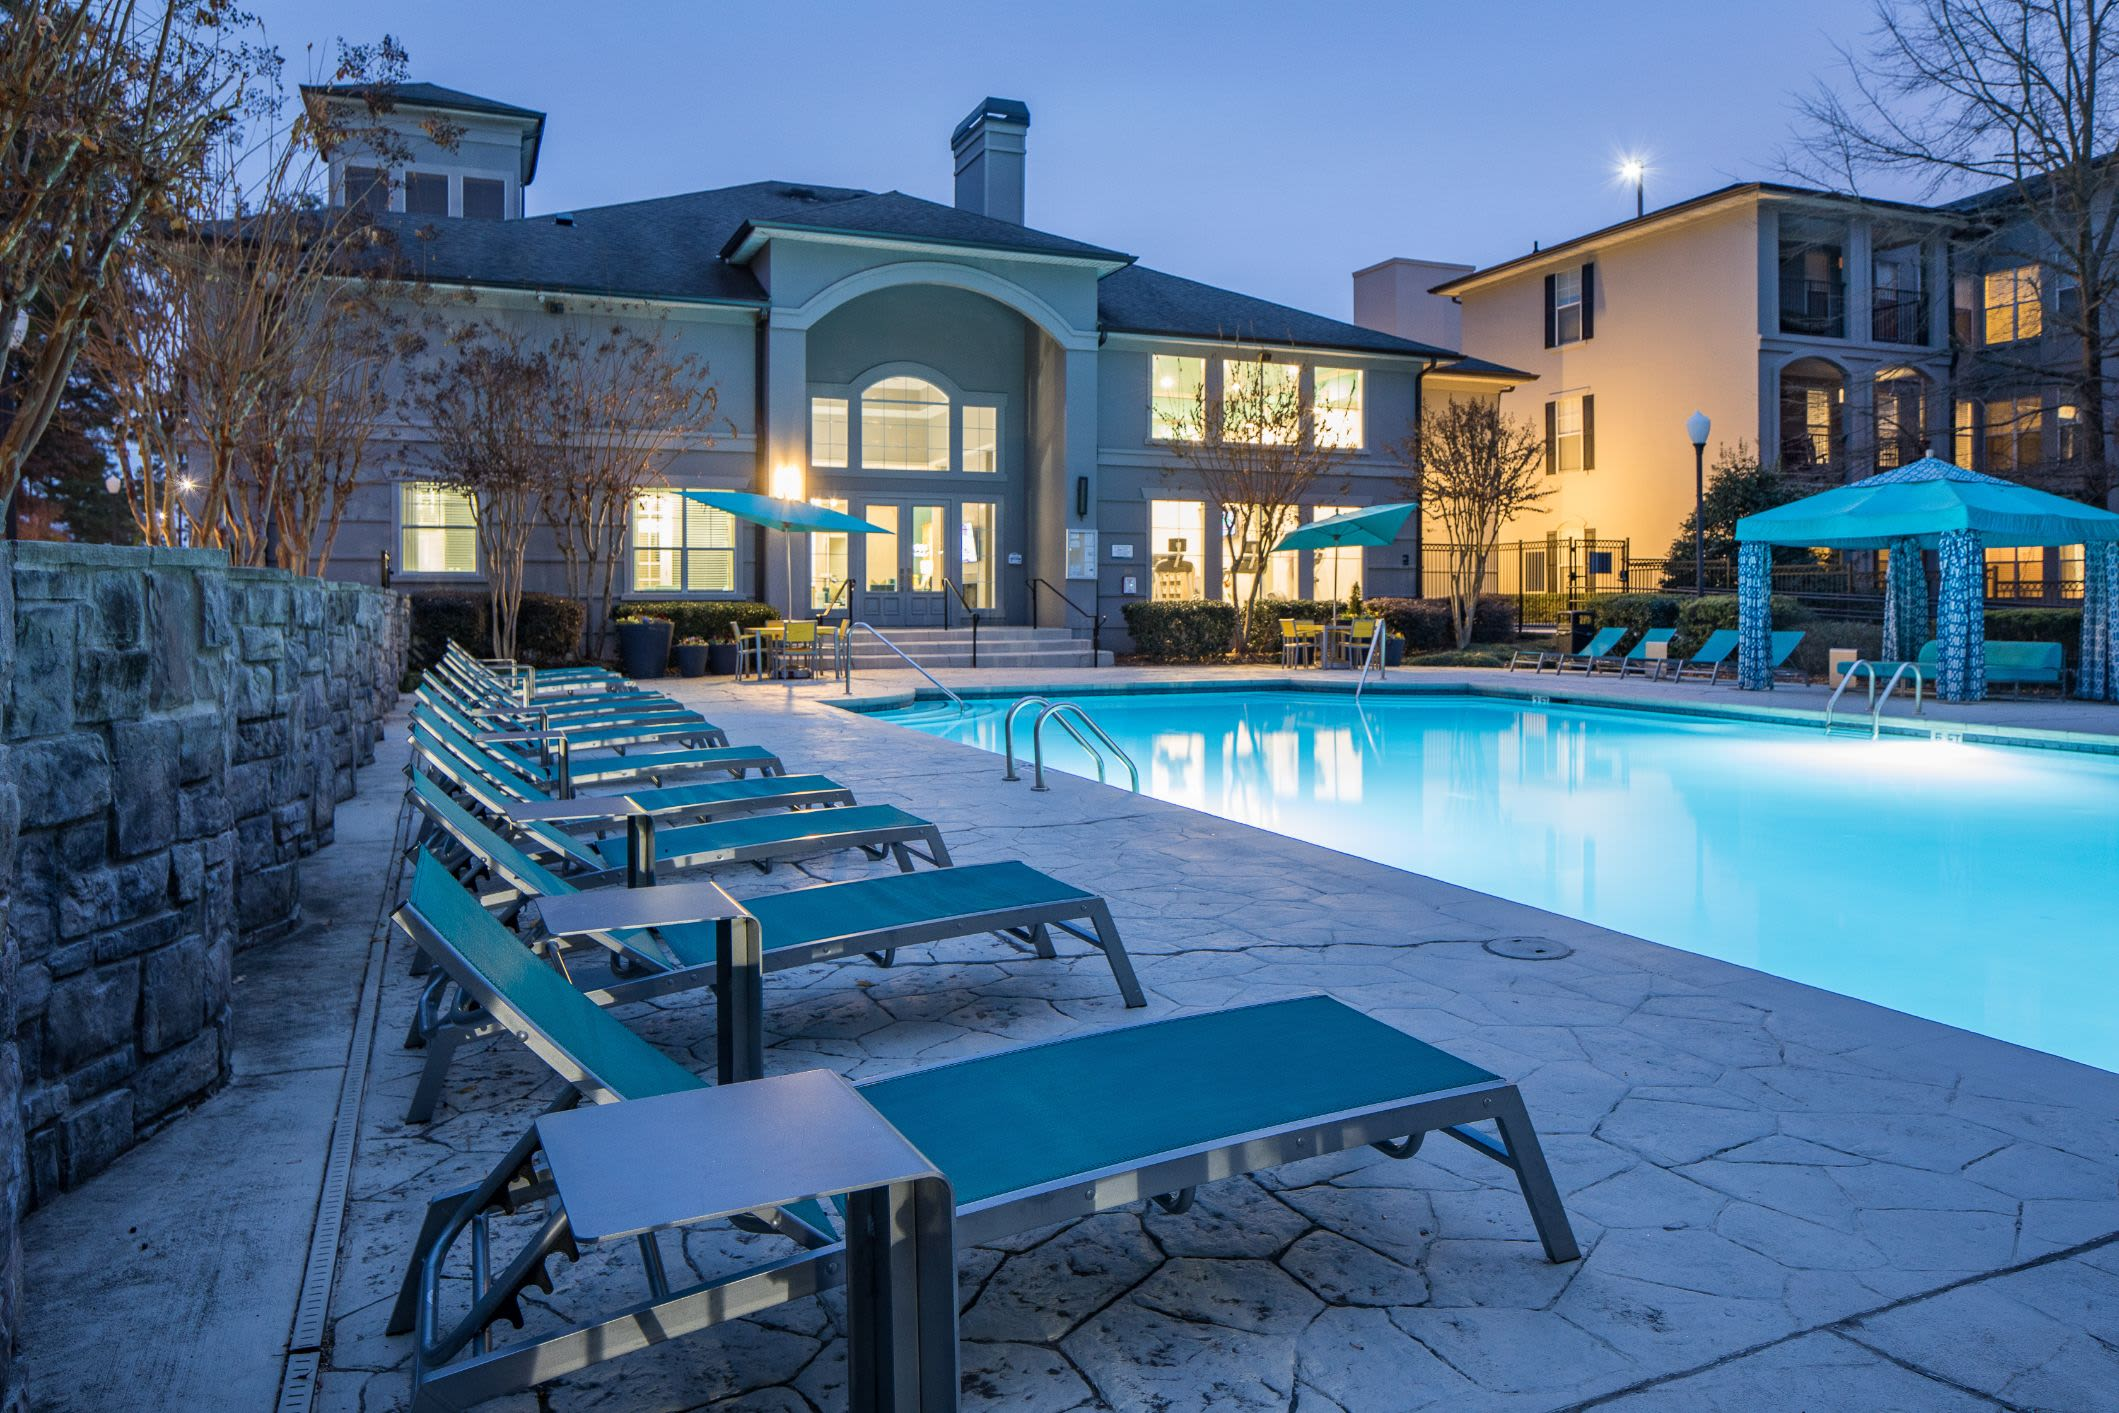 Swimming pool at dusk with the clubhouse behind it at Marq Perimeter in Atlanta, Georgia